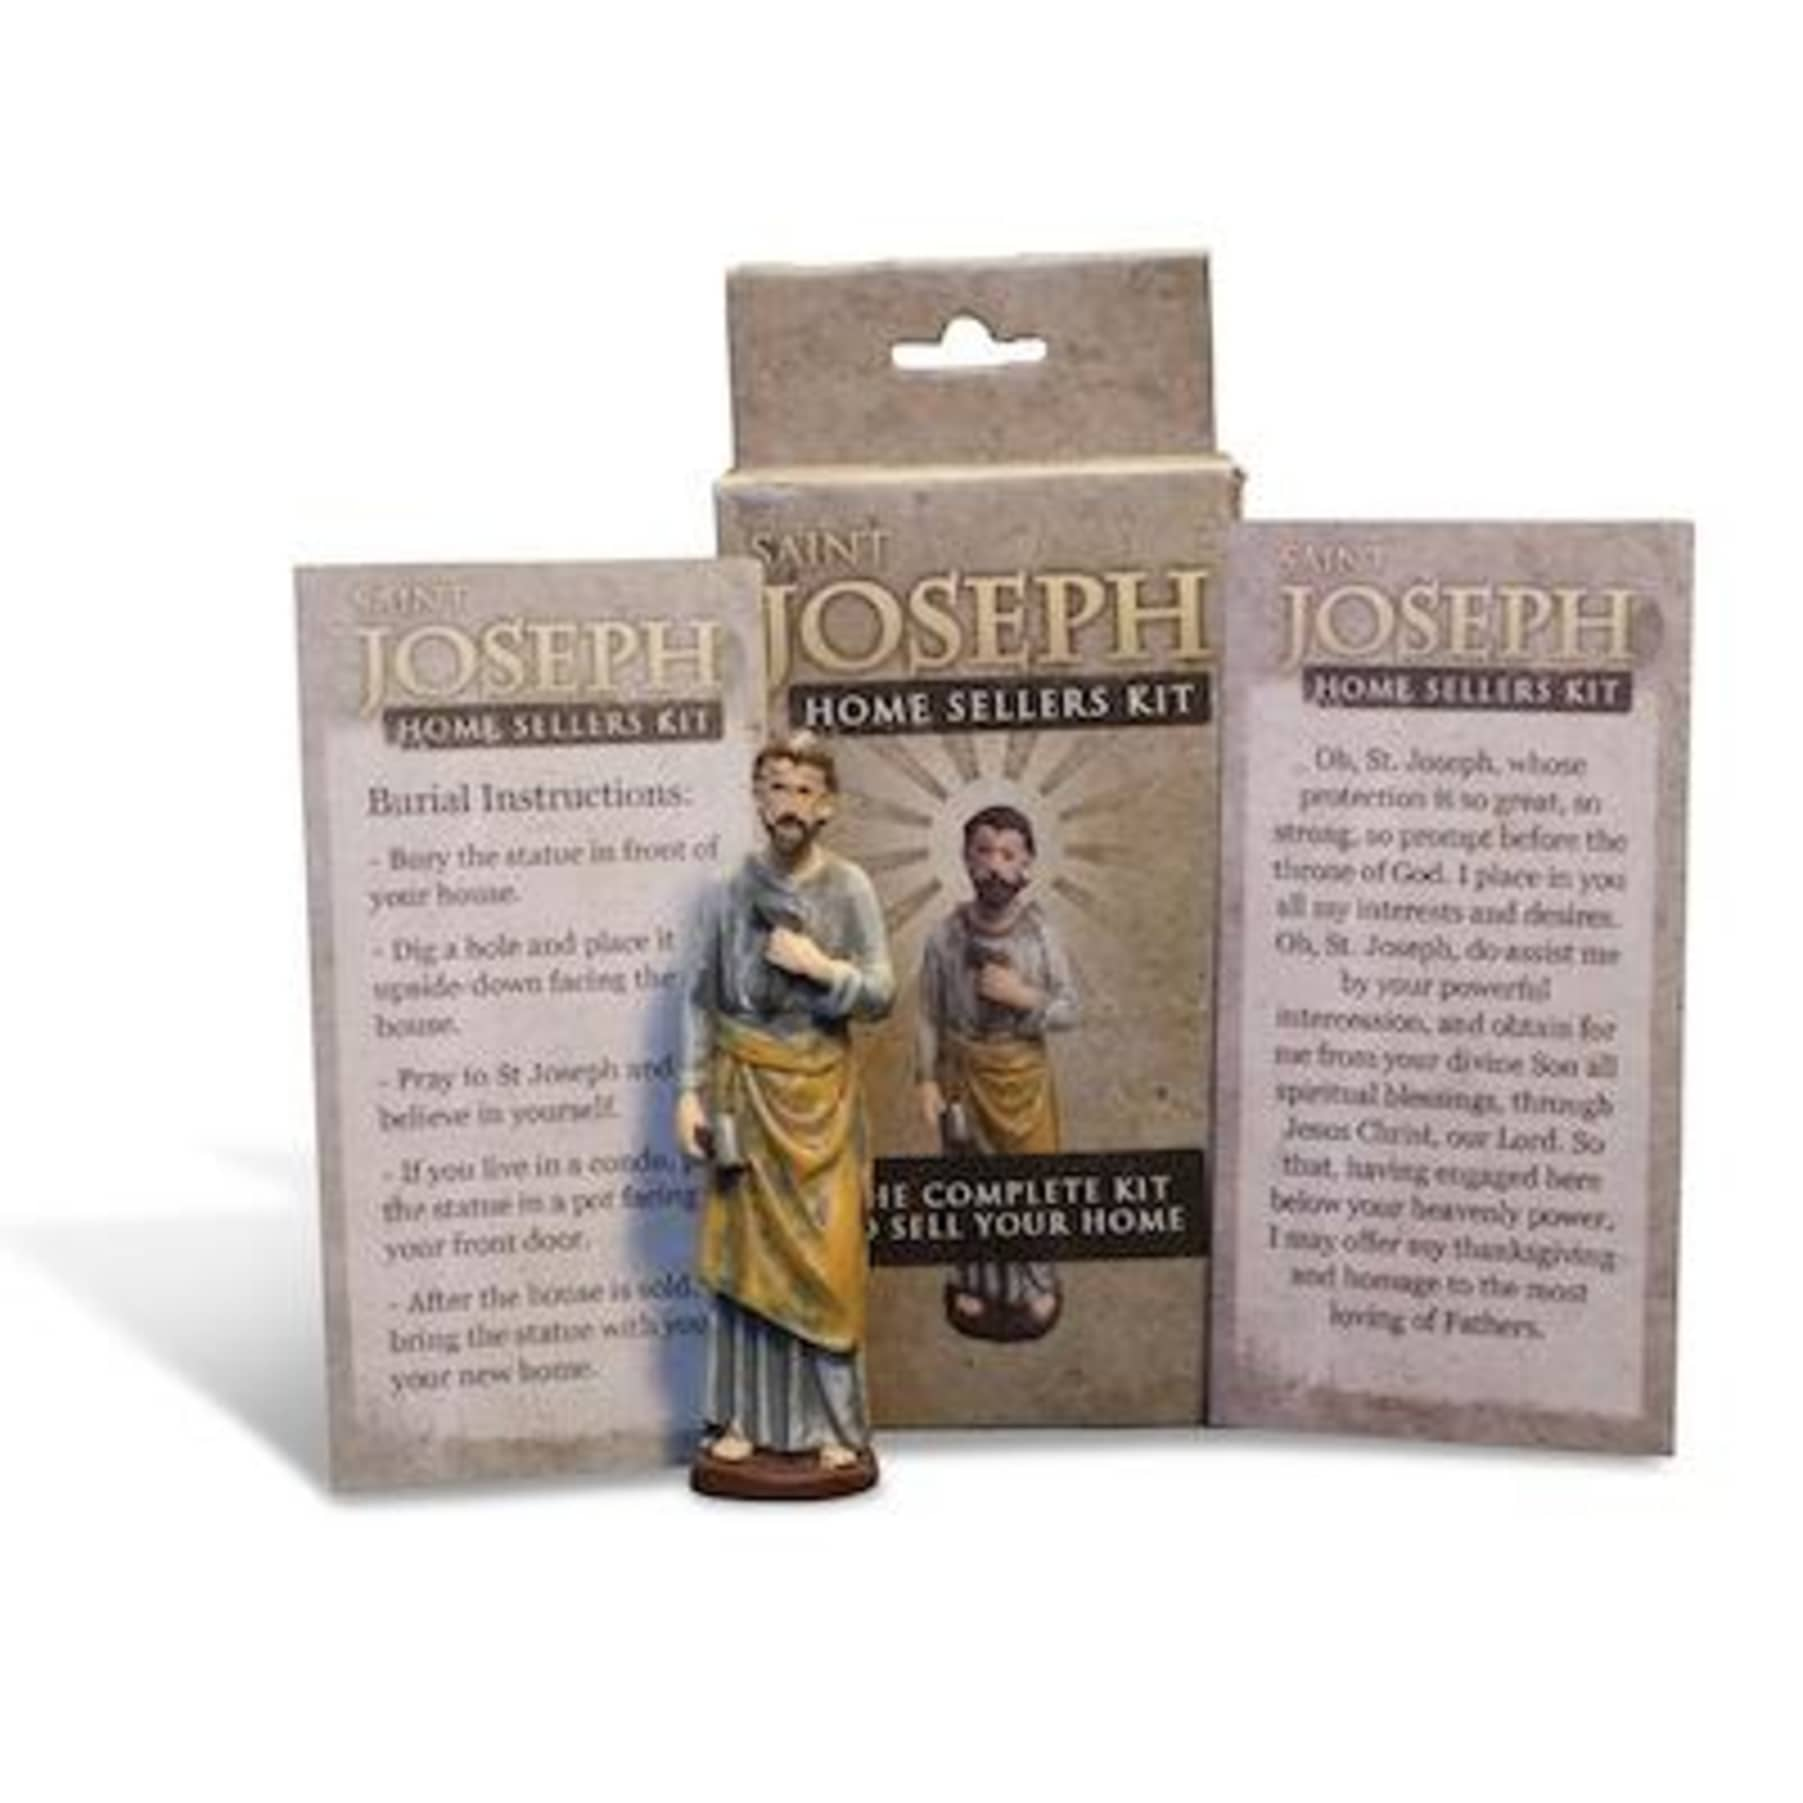 Ing A Home Bury St Joseph Statue The Key To Your Next